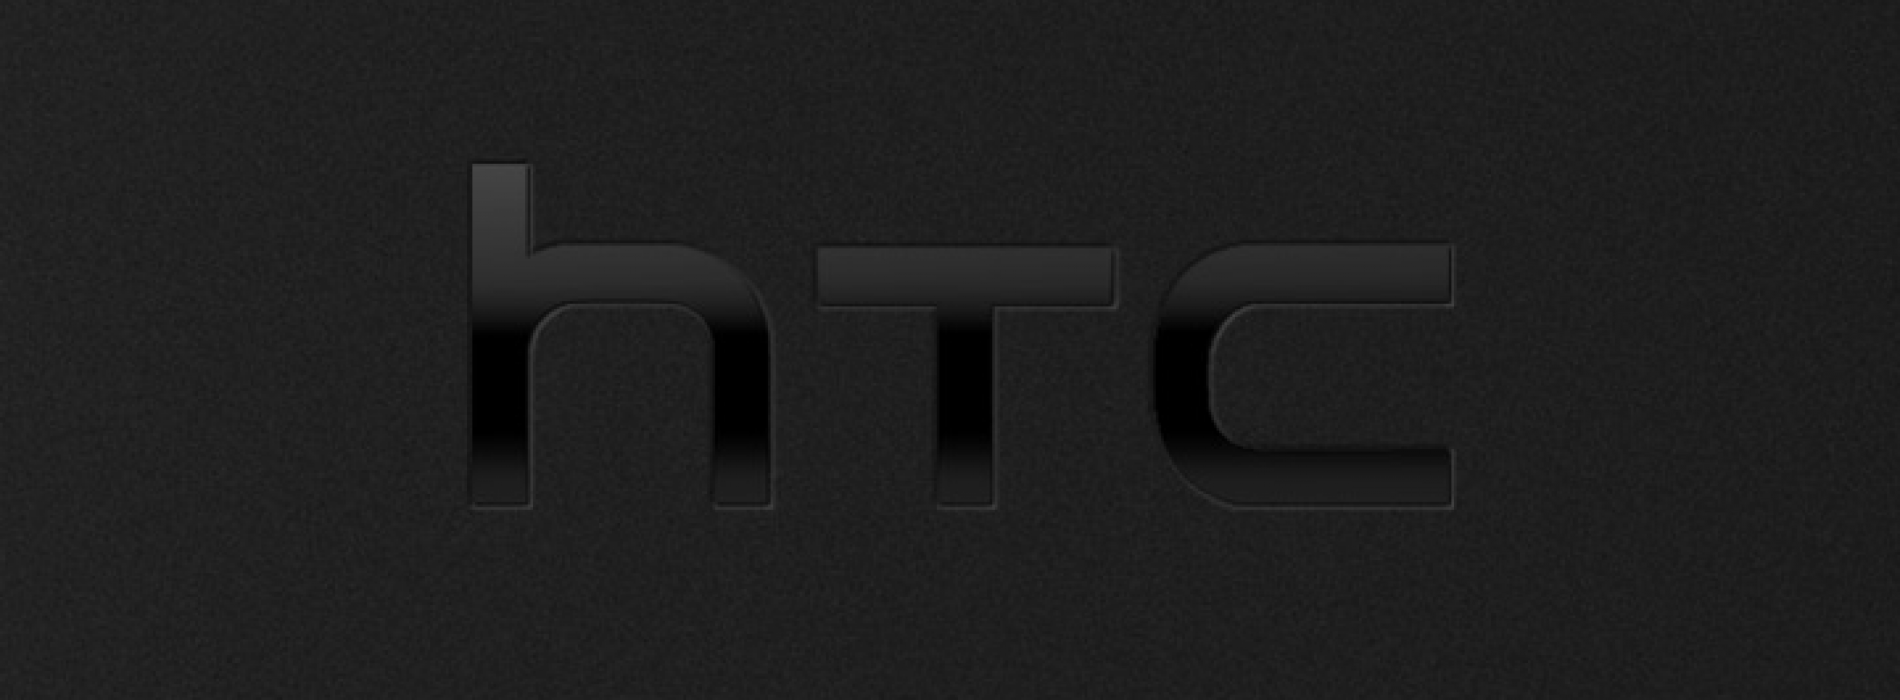 Sources confirm specs for HTC's 5-inch DLX